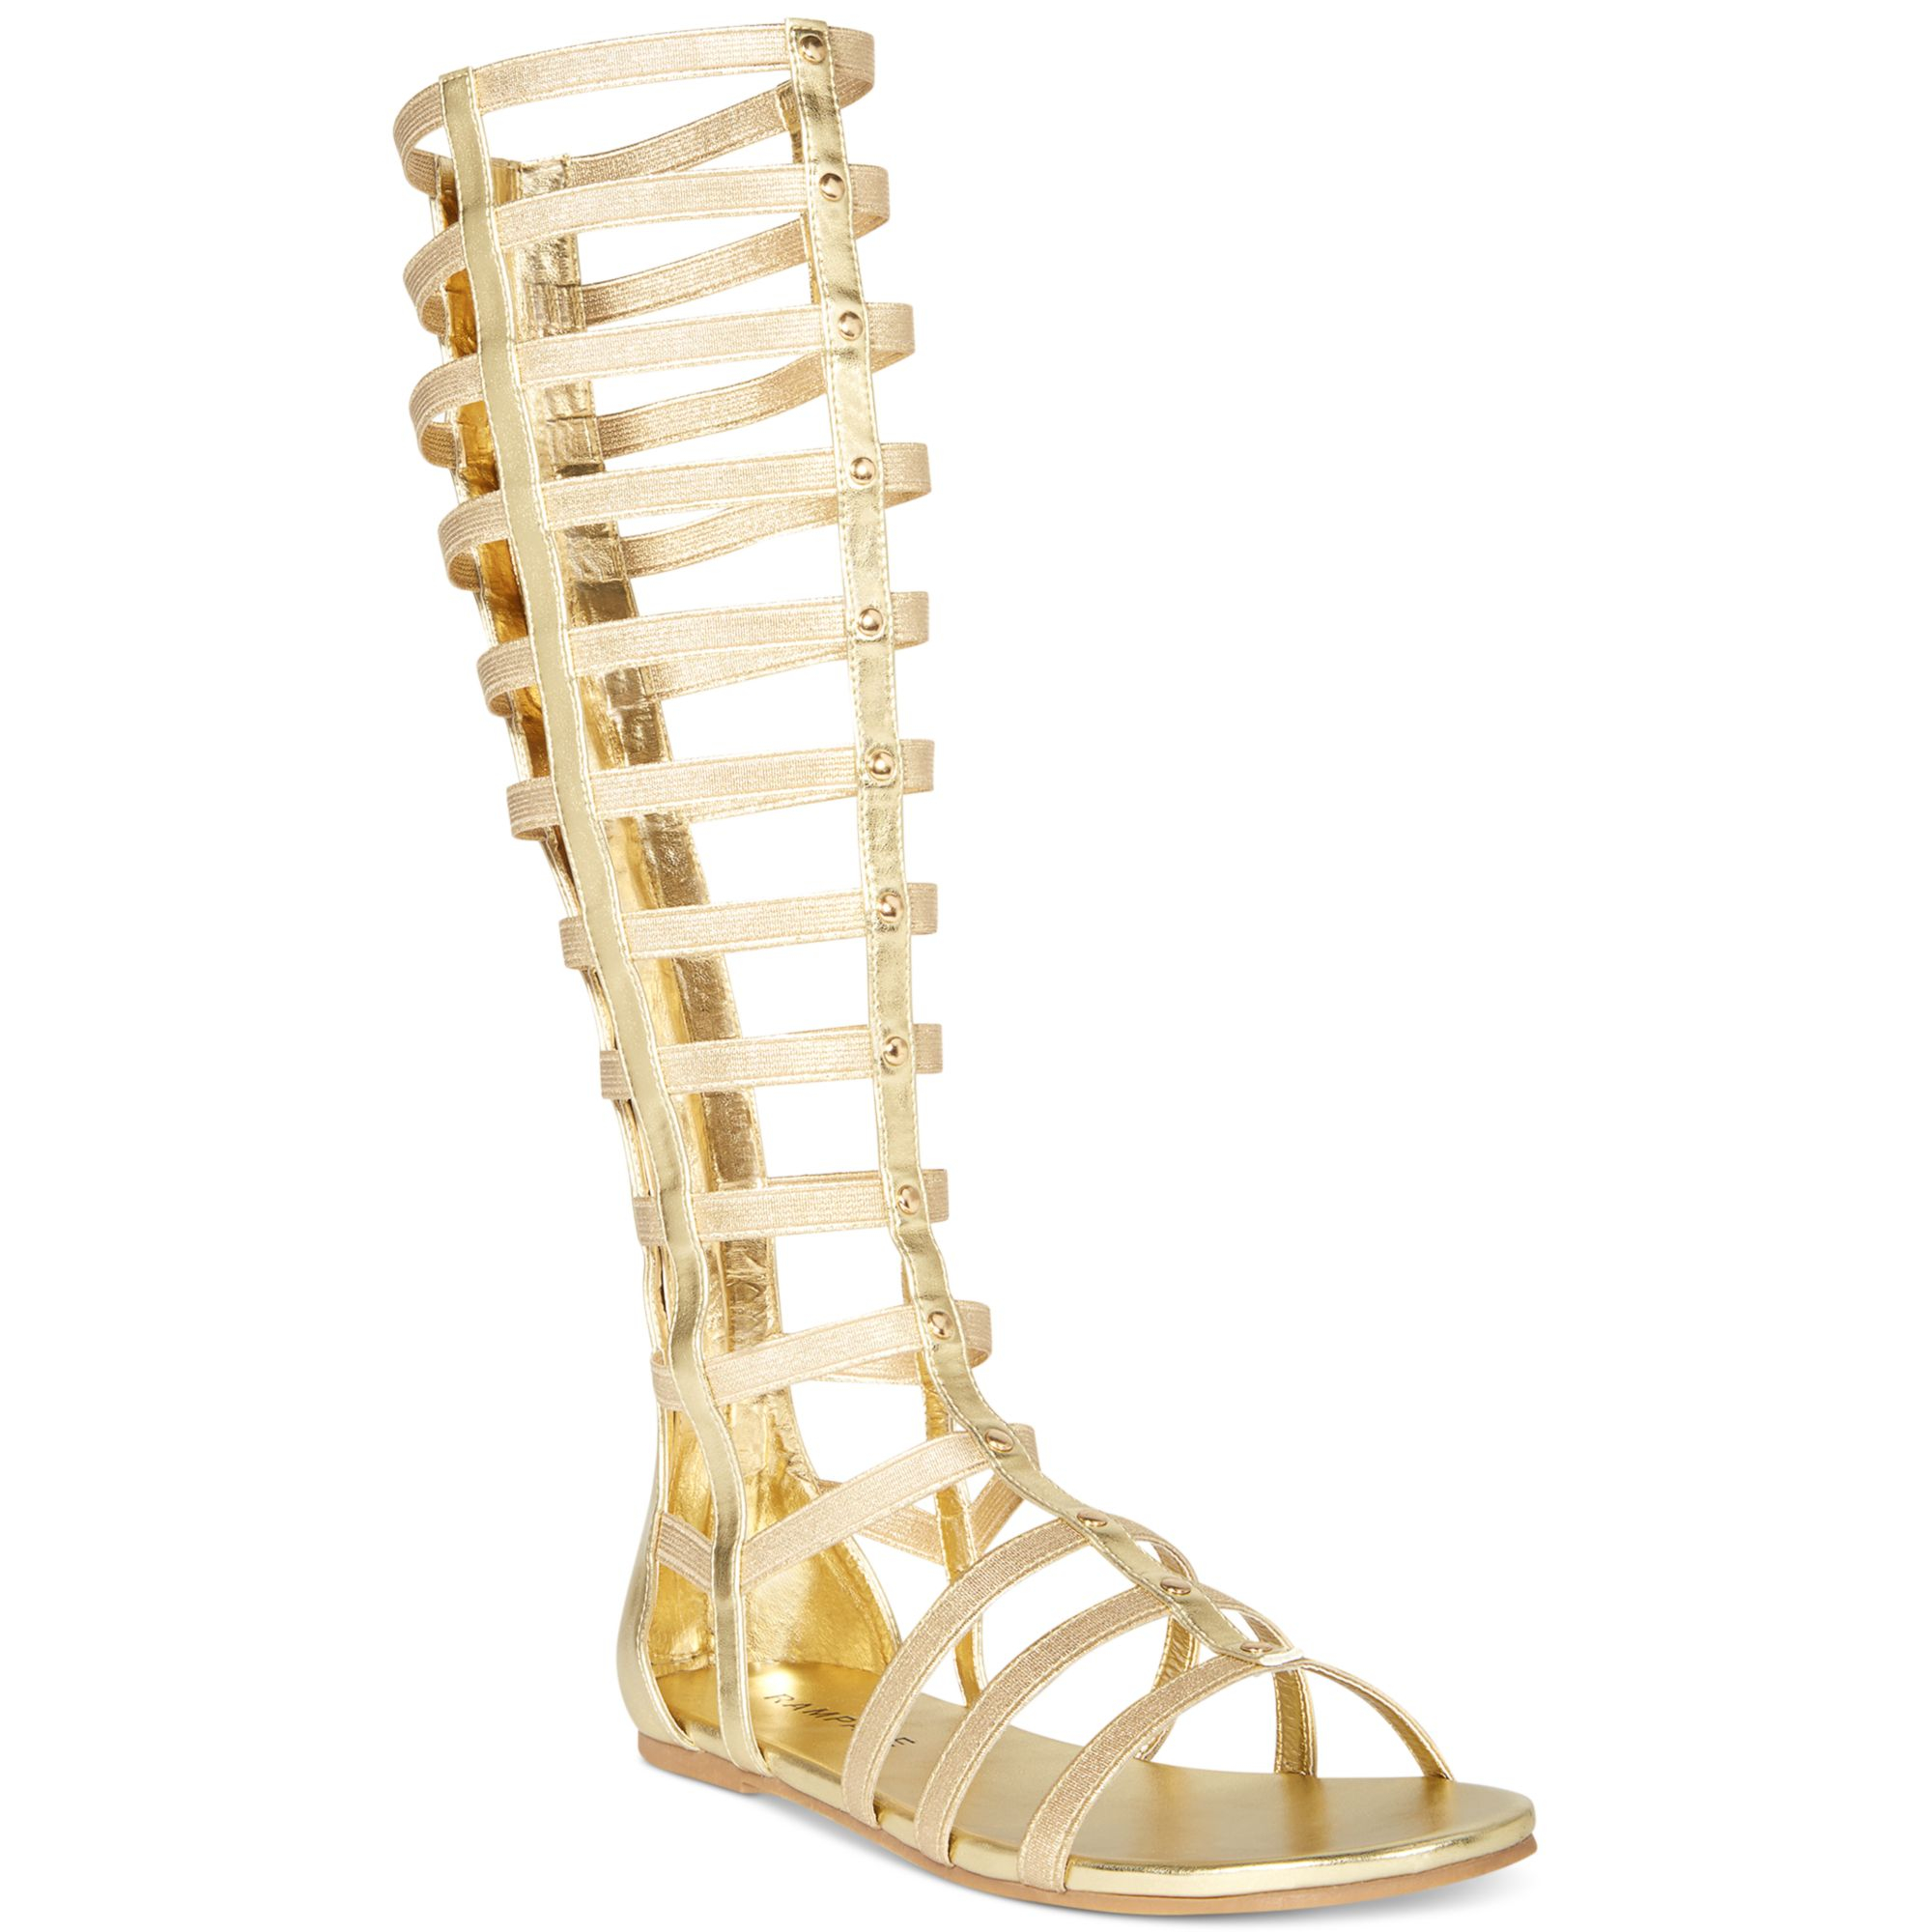 Rampage Porshia Gladiator Sandals in Metallic | Lyst